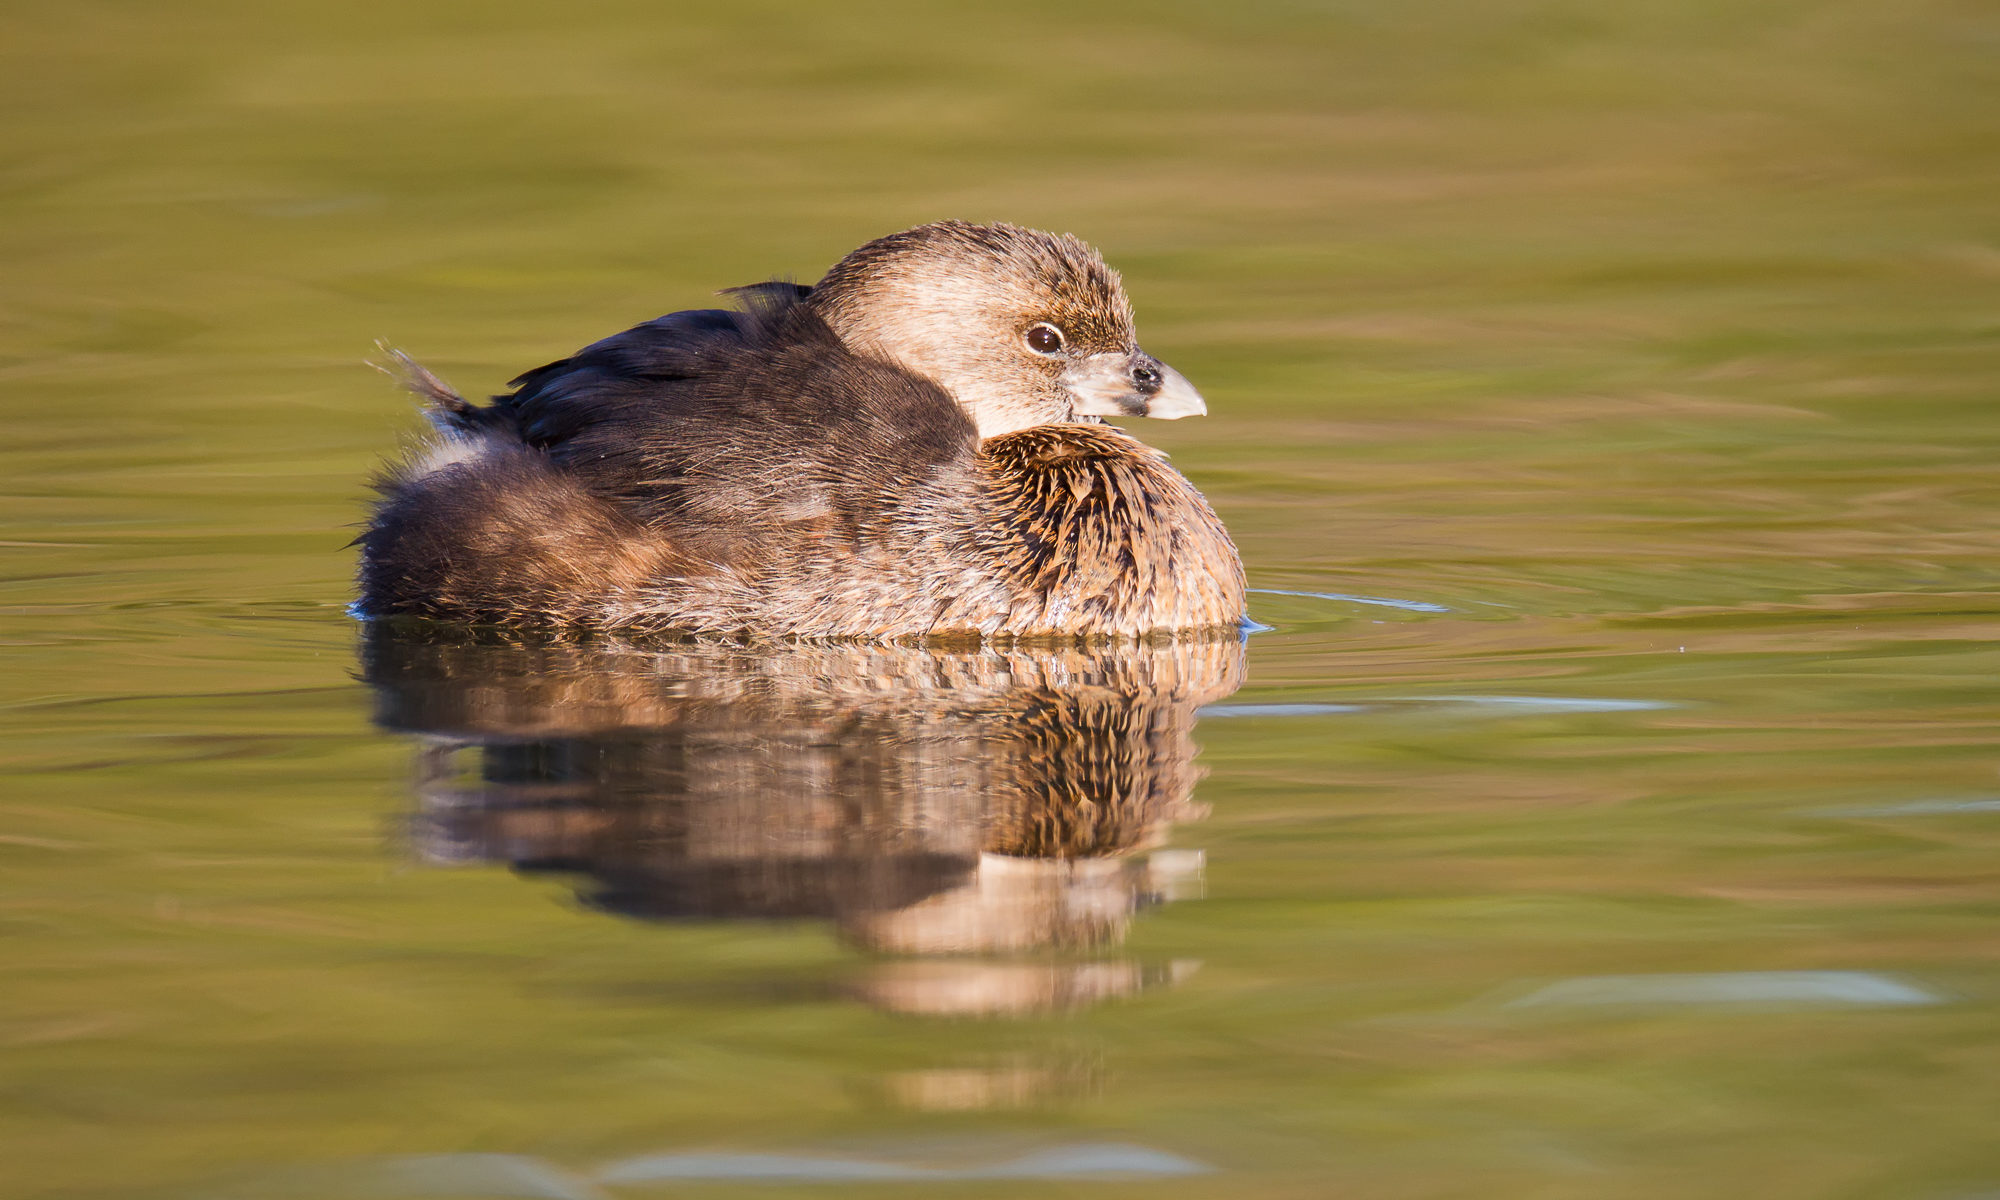 A pied-billed grebe is reflected in the still water near the shore of a lake. The color reflected in the water comes from the nearby shore.